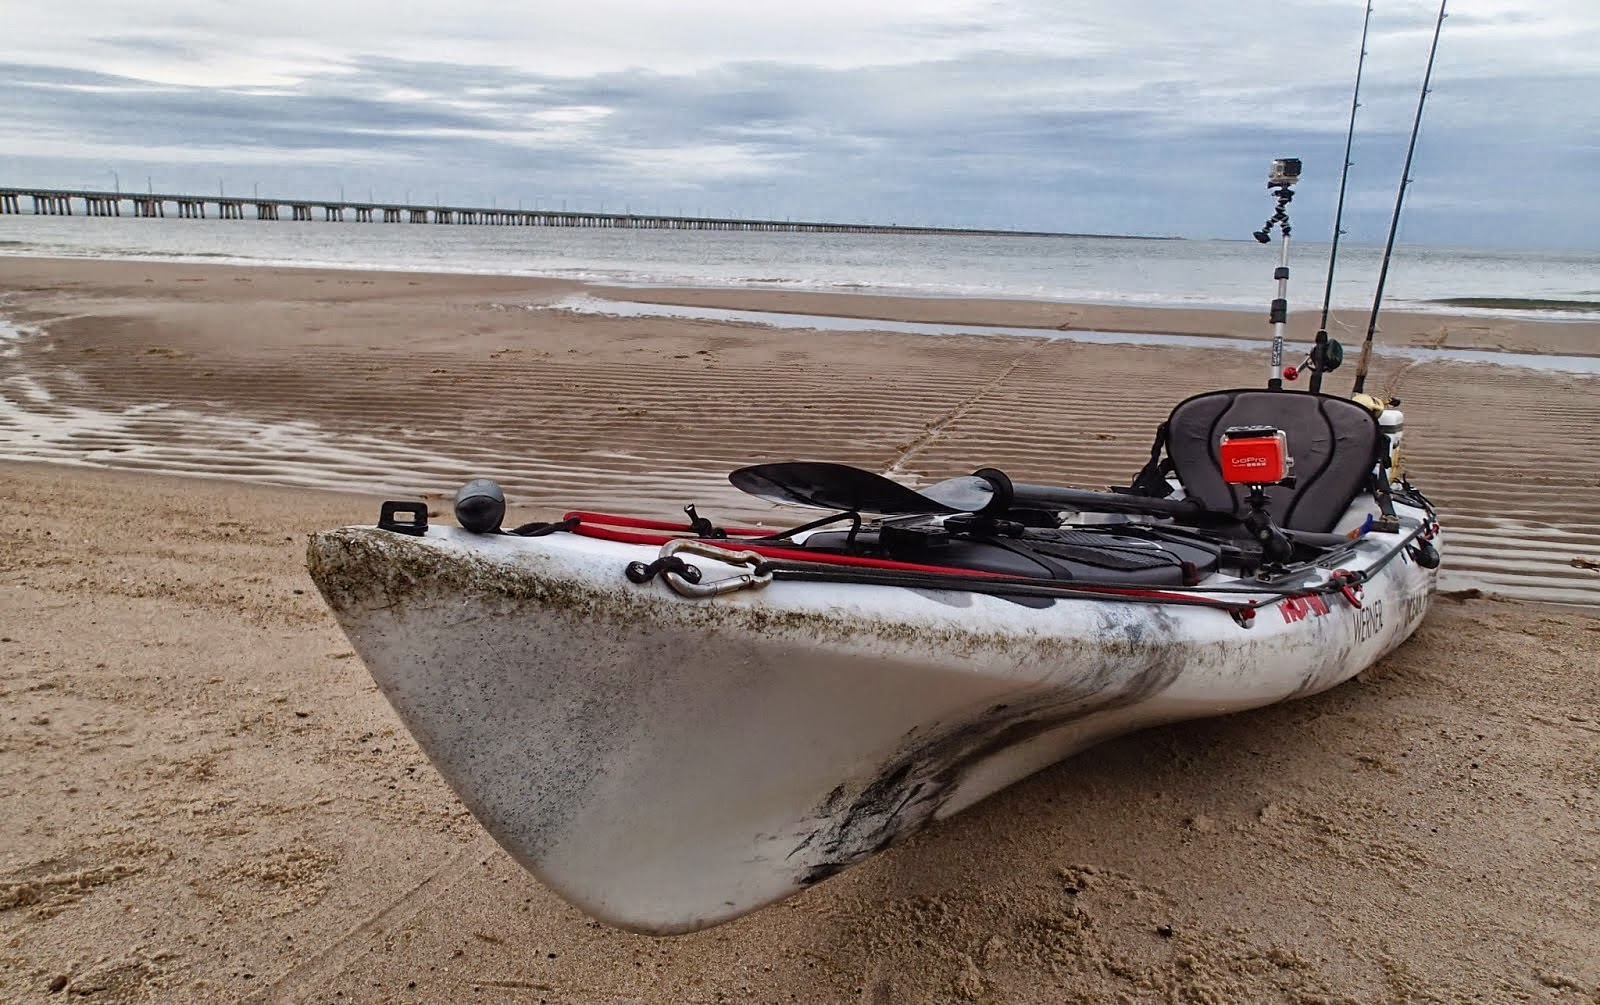 http://www.angling-addict.com/2014/08/ocean-kayak-trident-13-review.html